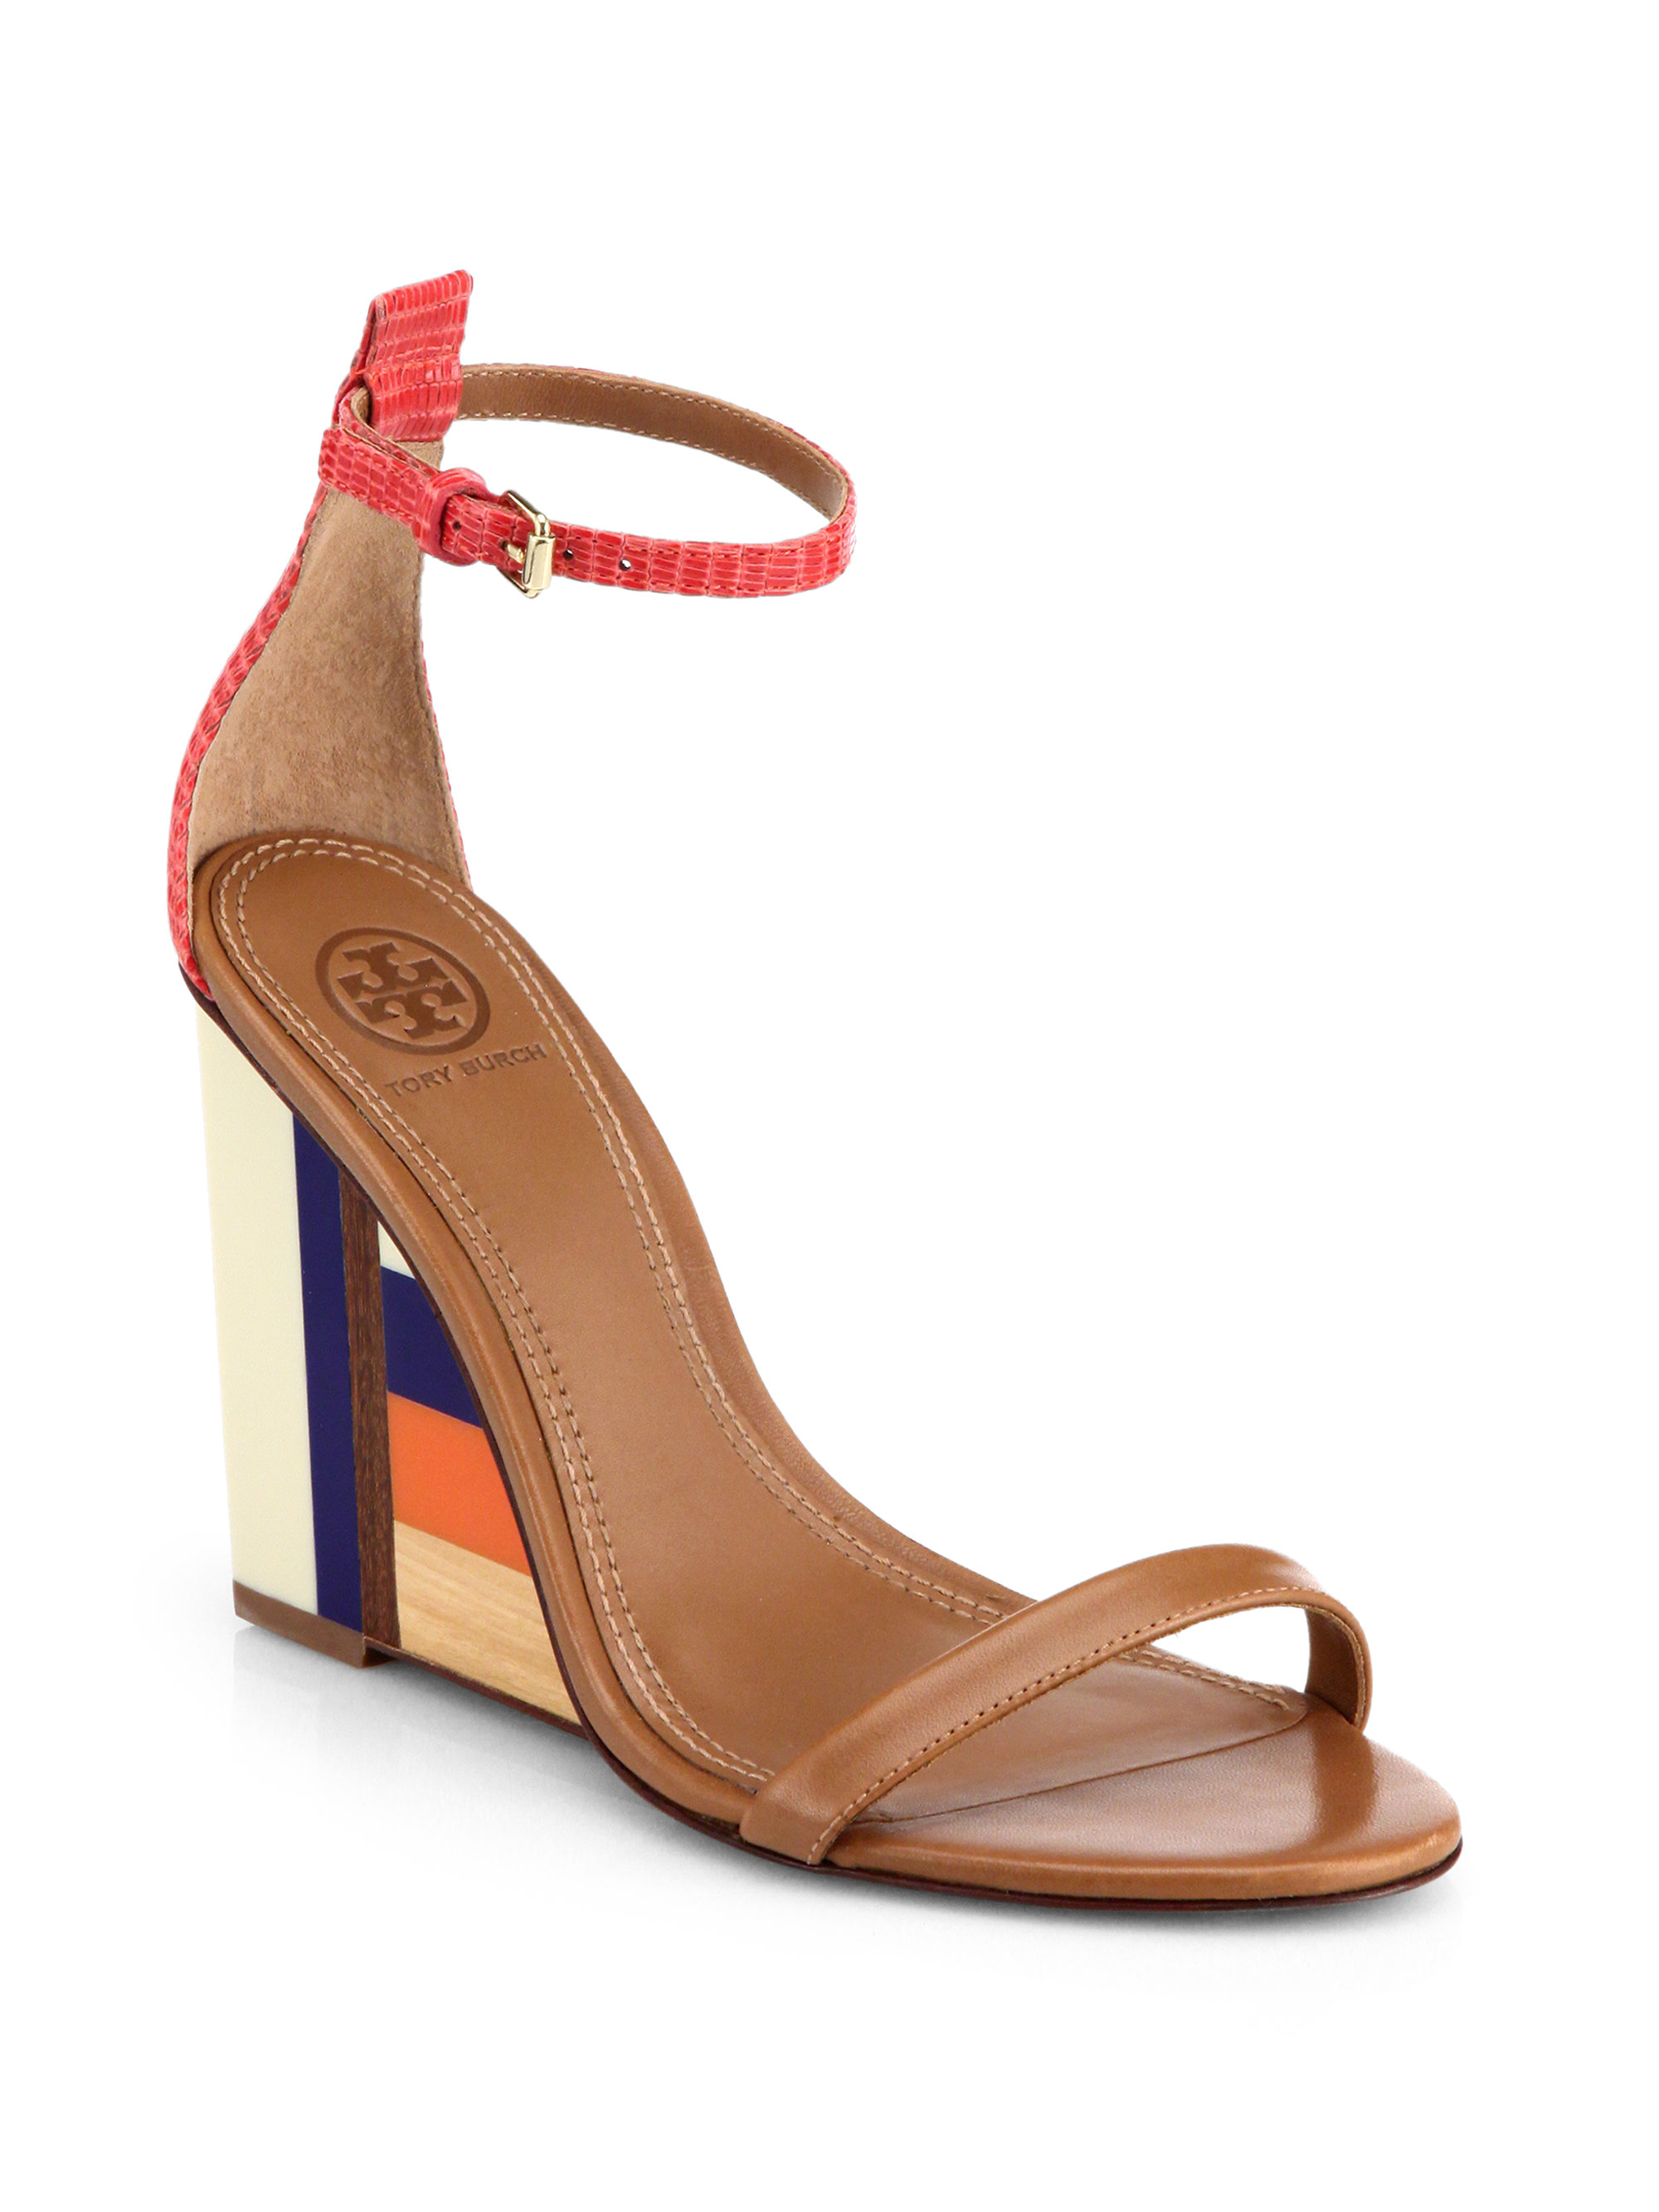 6359f3f4e1ad Lyst - Tory Burch Colorblock Wooden-Wedge Leather Sandals